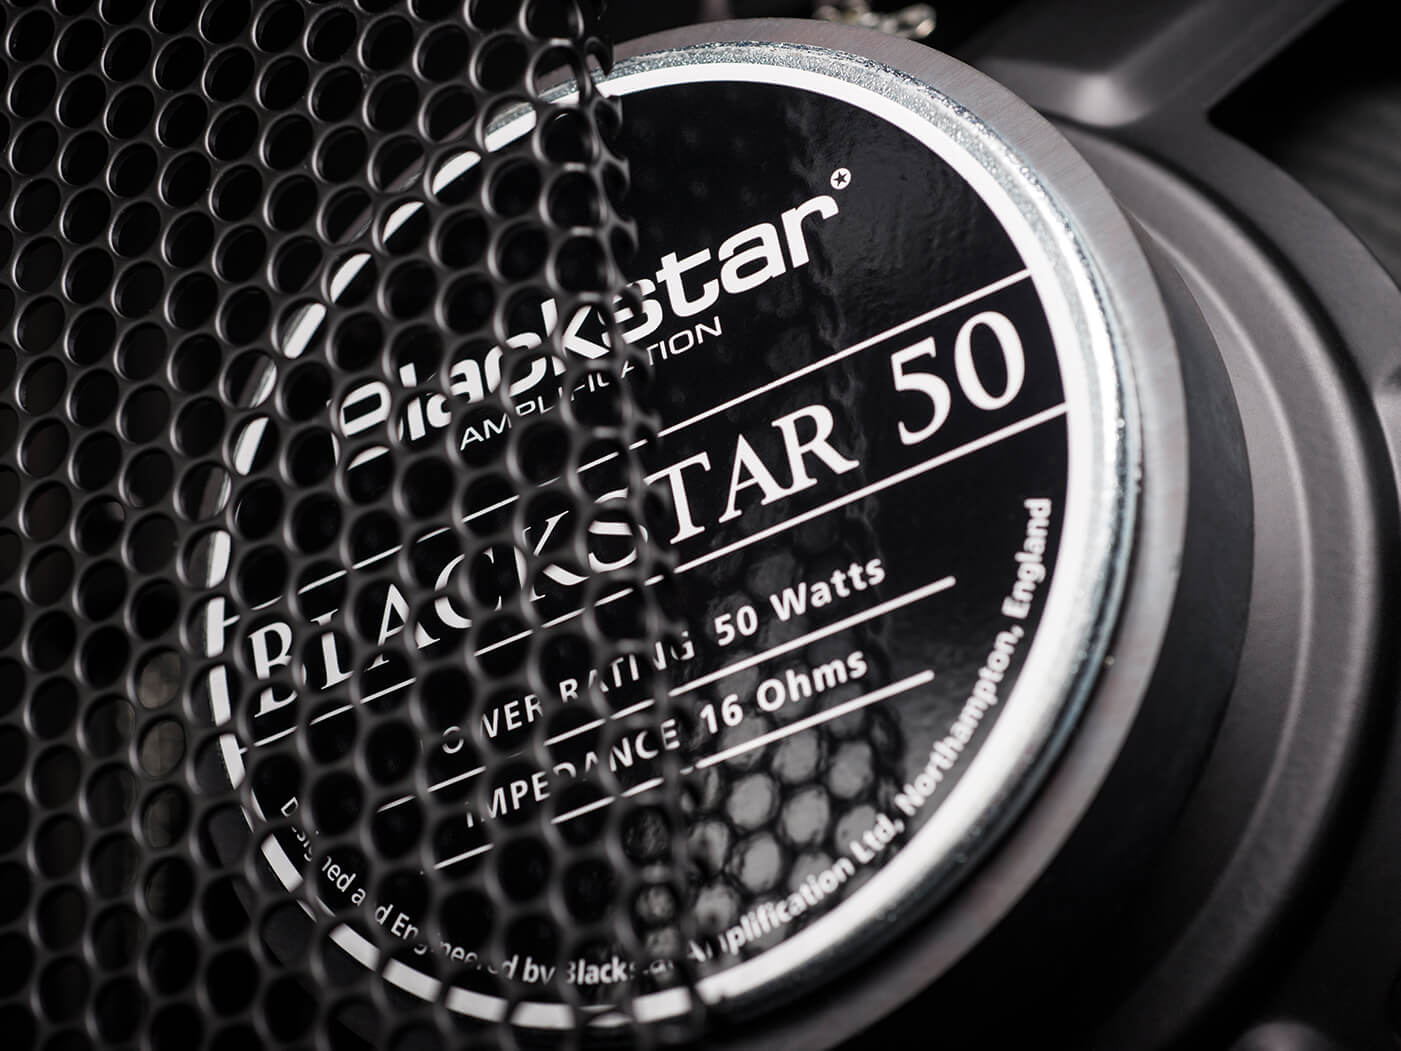 Blackstar HT20R MkII review